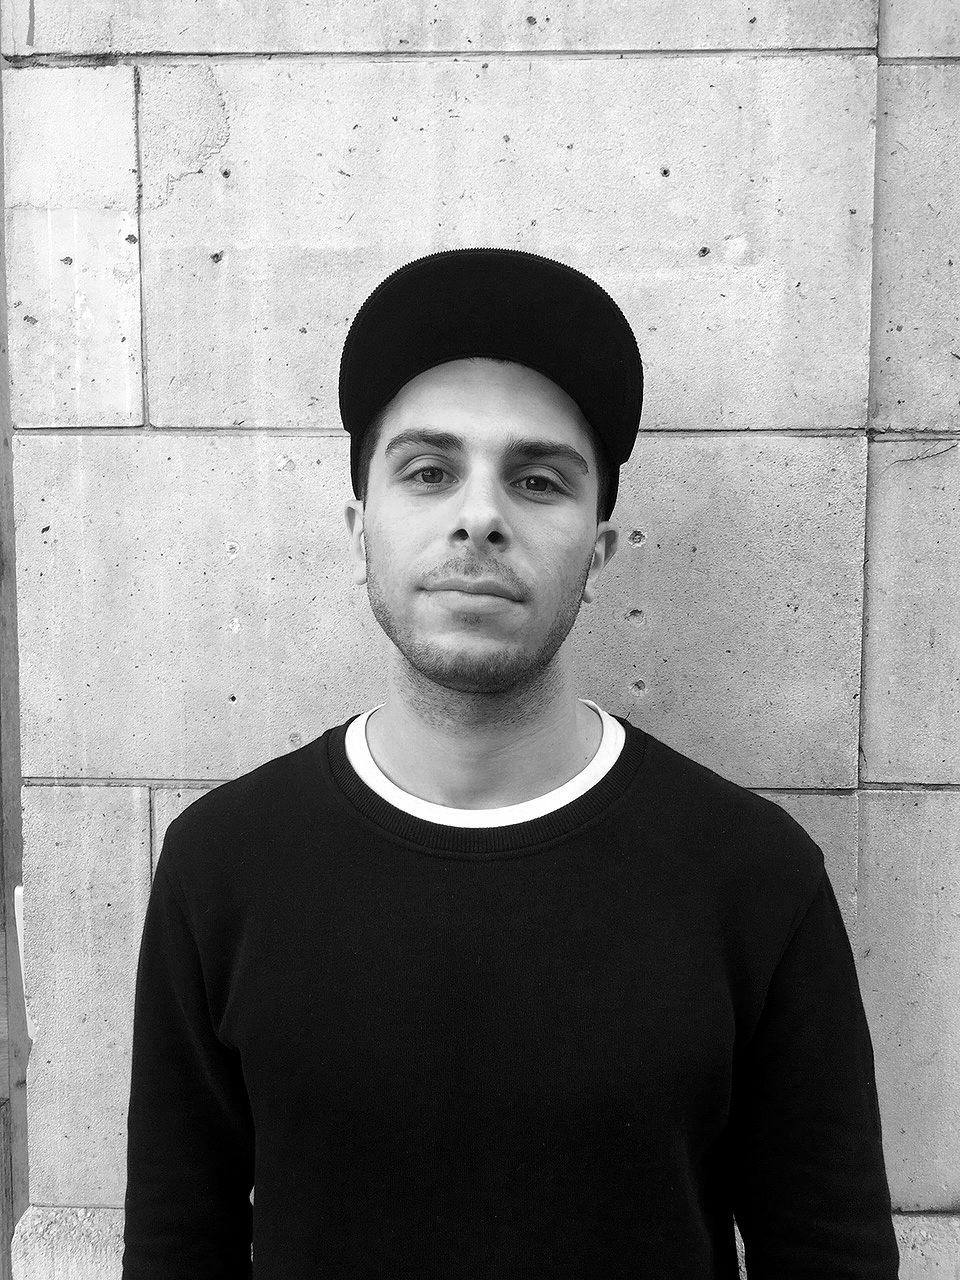 Mike Malak - Mike Malak has been an agent at CODA Agency for the past 6 years, looking after acts from Jess Glynne to Desiigner, Billie Eilish, Yung Lean, Lil Uzi Vert, Kelis and more. Previously to this he ran his own agency and enjoyed stints at Warner Music and for Steve Aoki's management as well as a long lasting relationship with the Black Eyed Peas.Mike founded KID Talks 3 years ago and the program focuses on panels, advice sessions and workshops for young people aiming to get into the industry. Having worked in most parts of the industry from management to PR, booking agency, graphics/web design, promotion, Mike has a strong understanding for what it takes to bring all these pieces together.